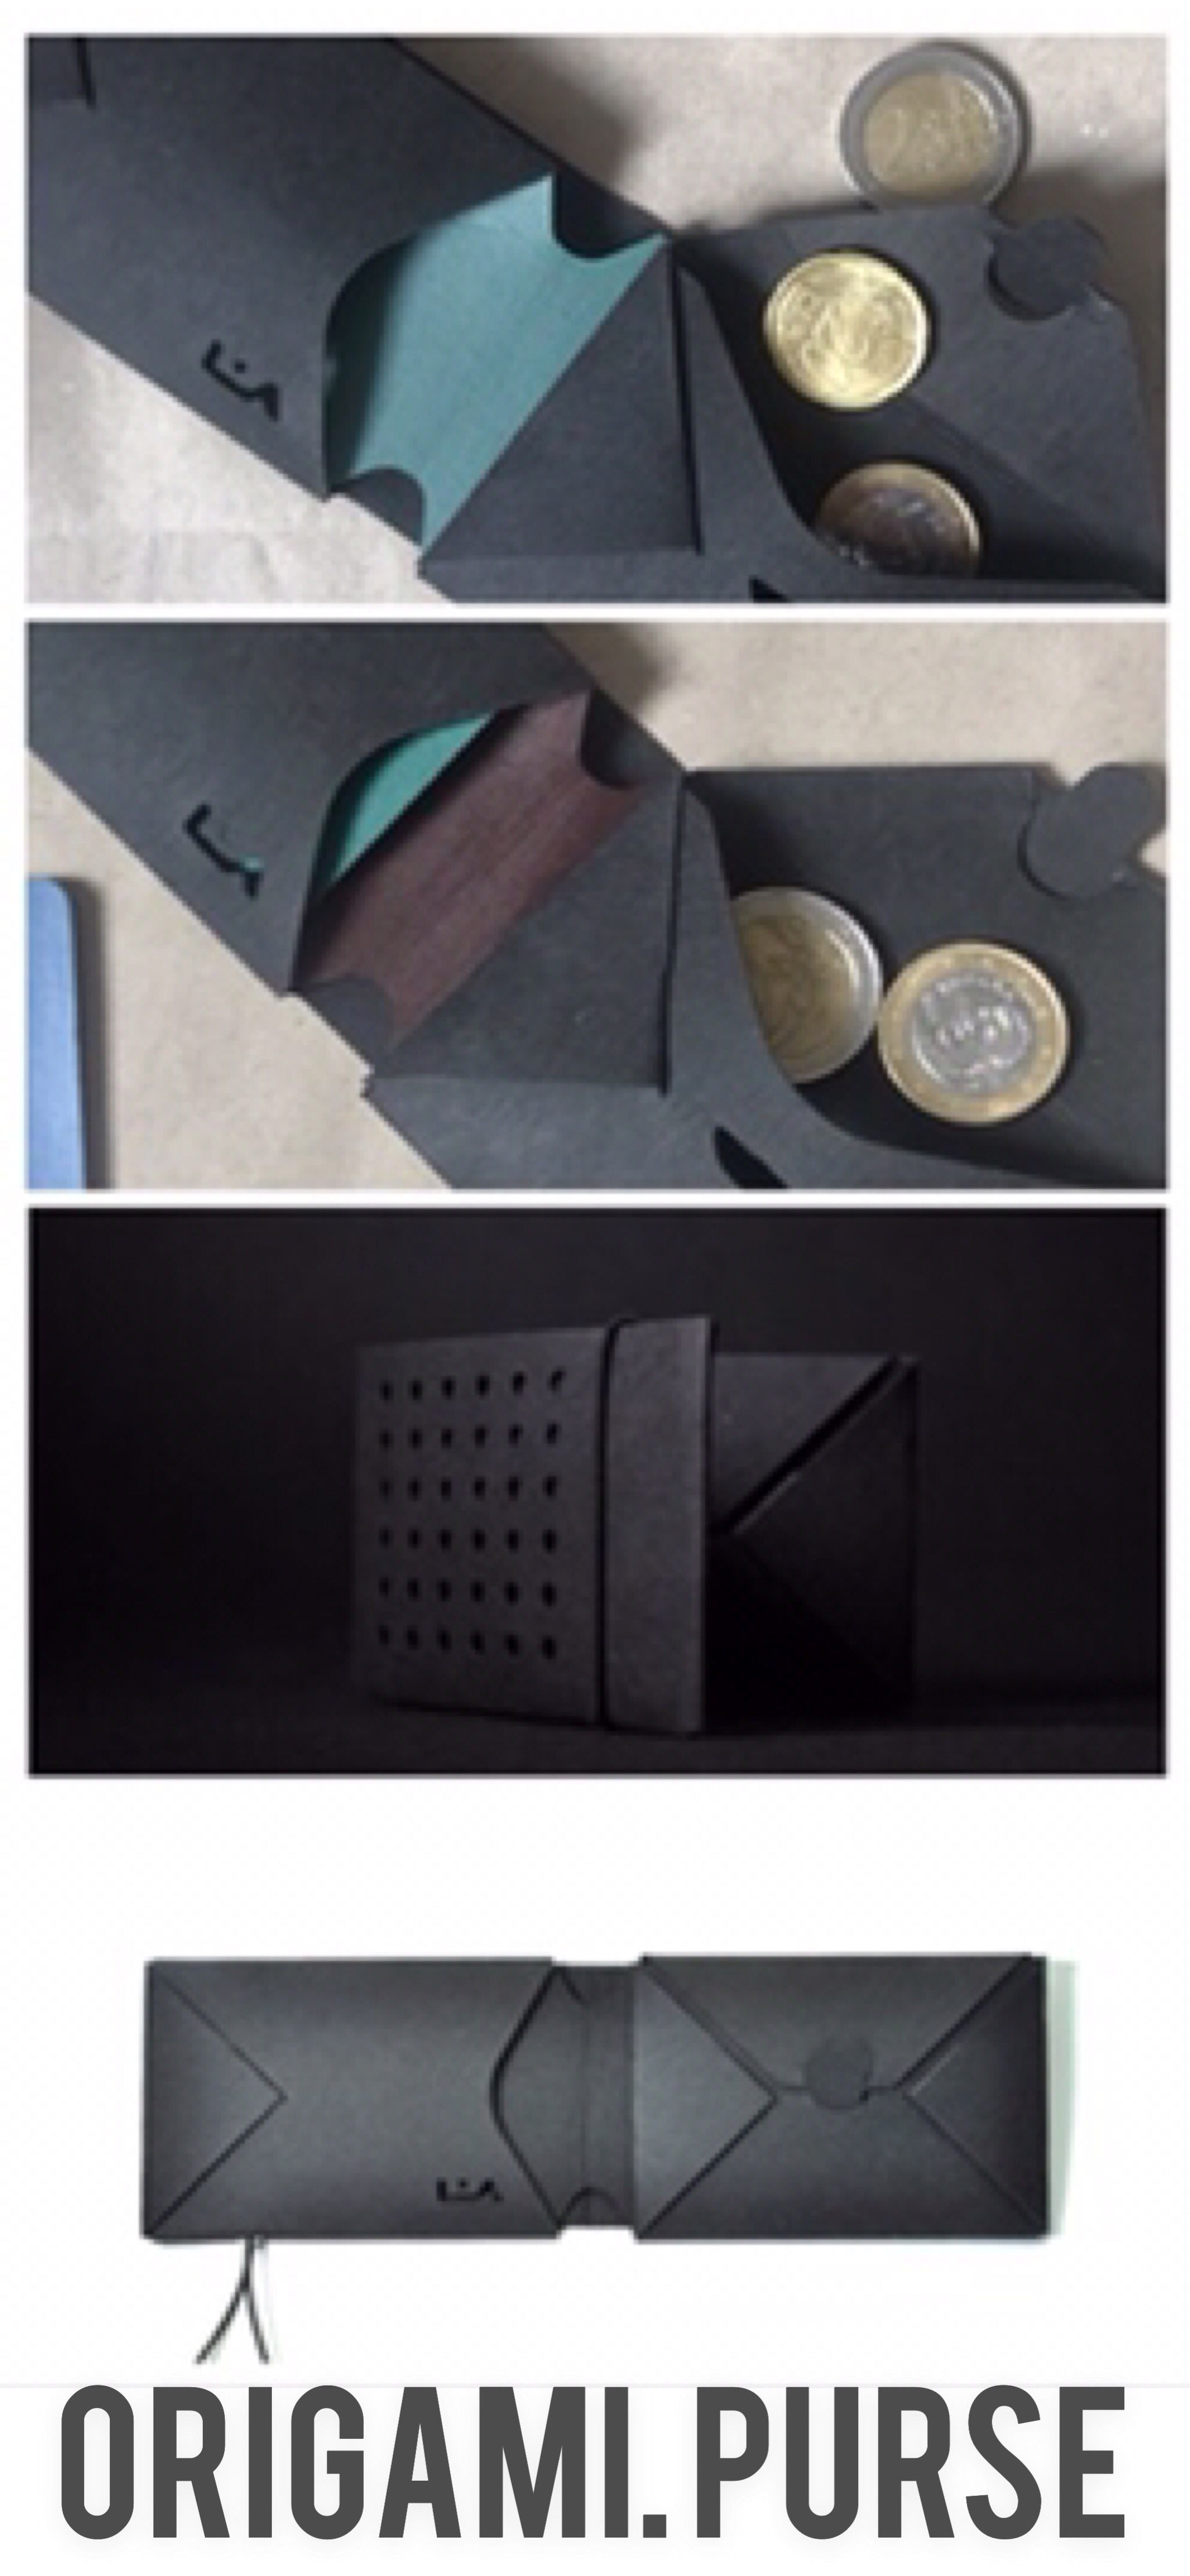 Liaform Have Created A Collection Of Small Sized Purses